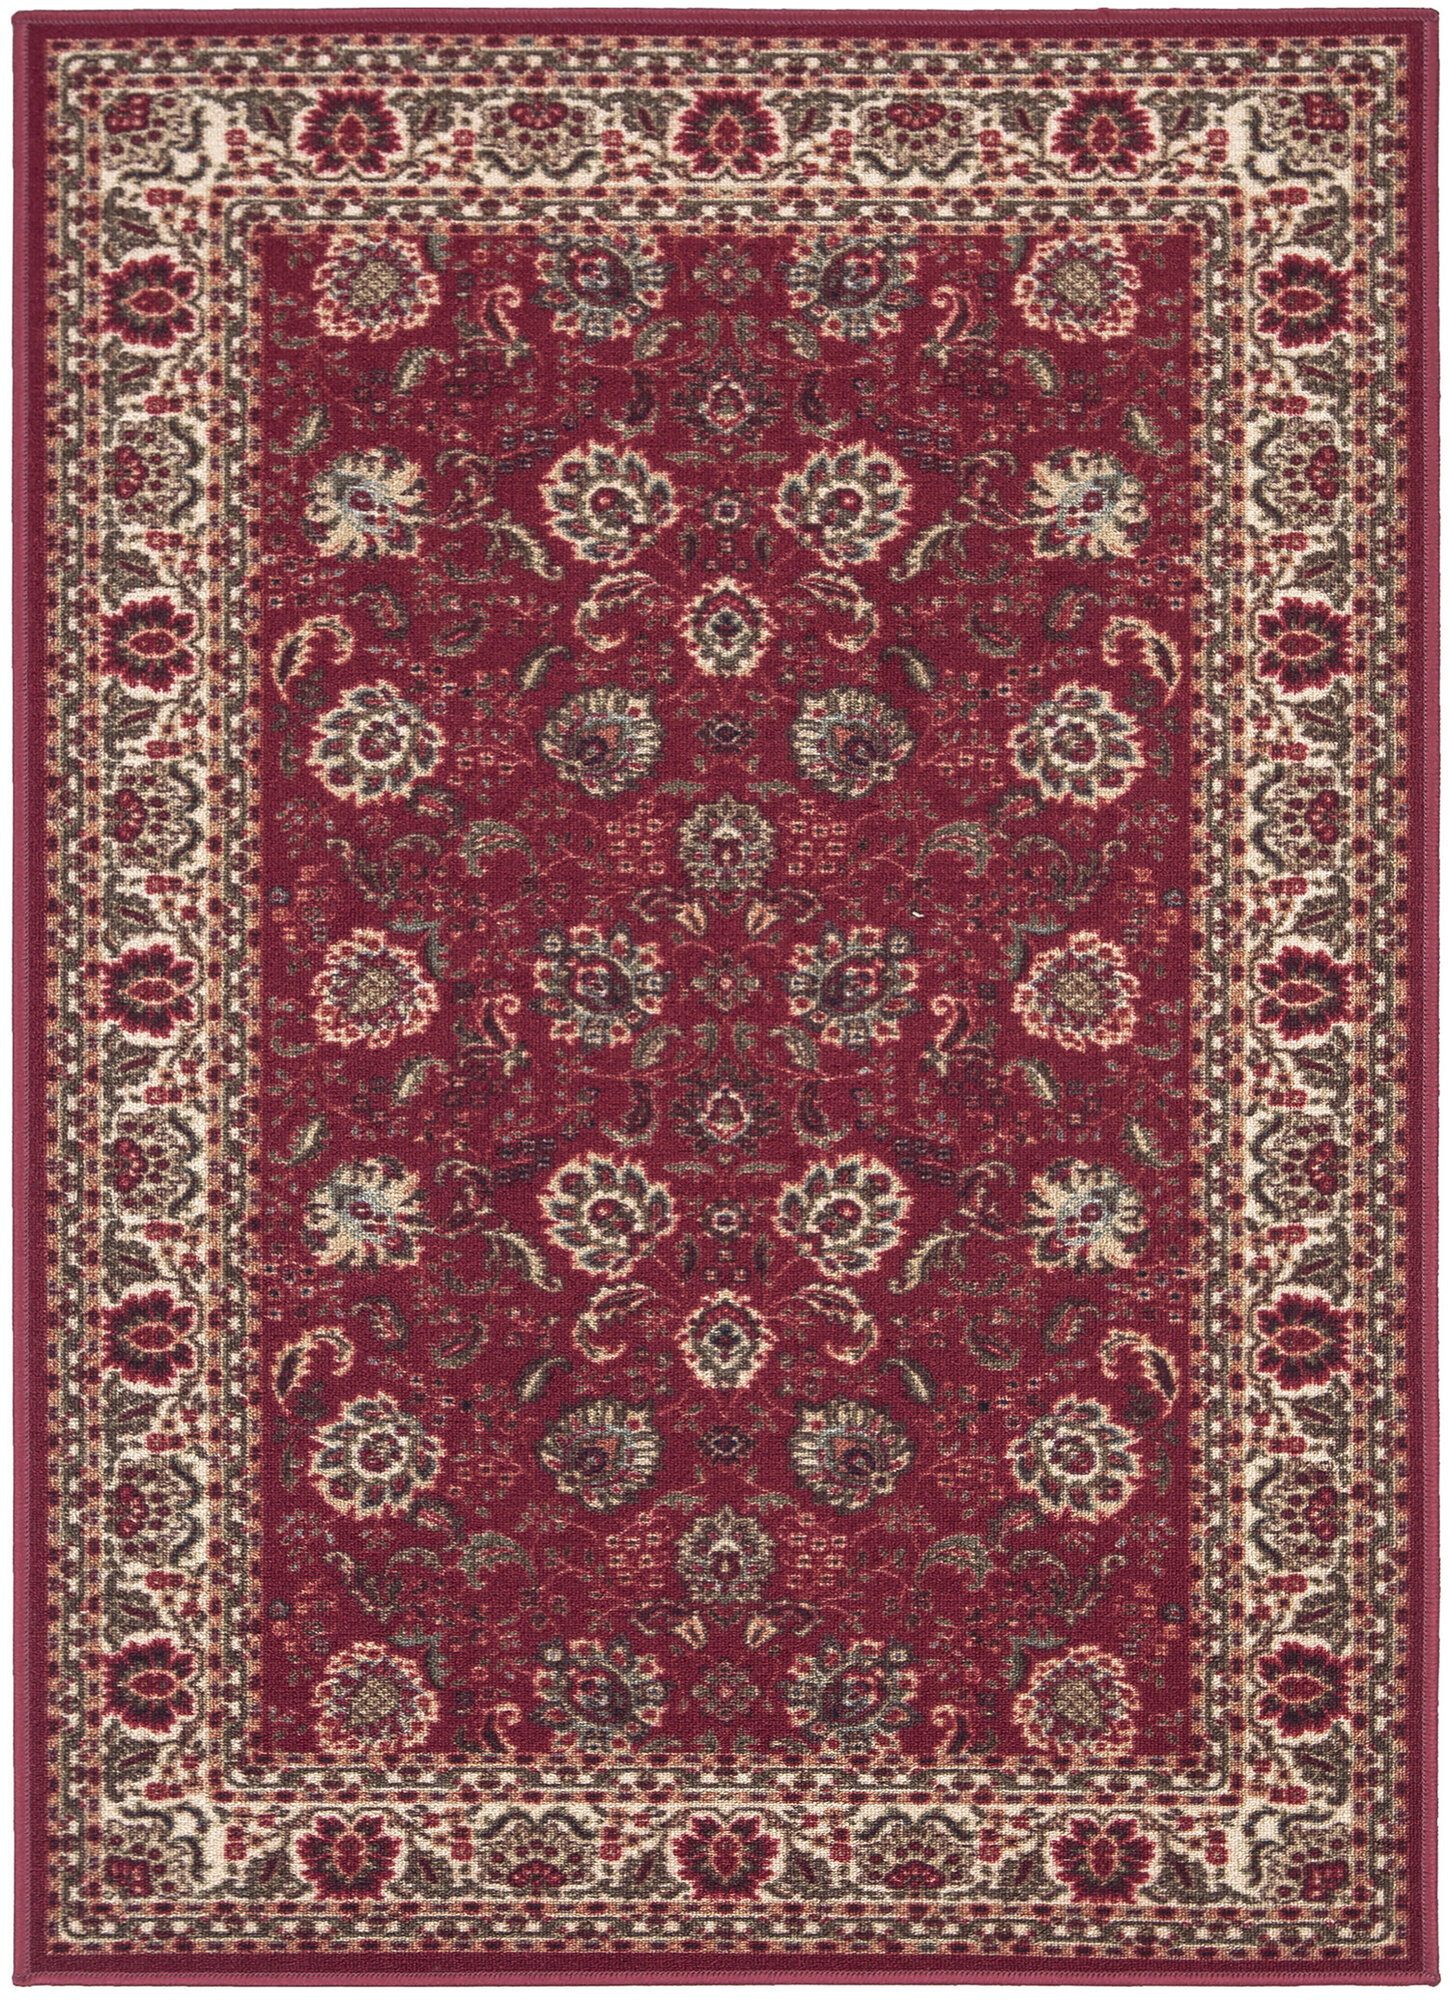 Ottomanson ottohome dark red floral area rug ebay for Red floral area rug